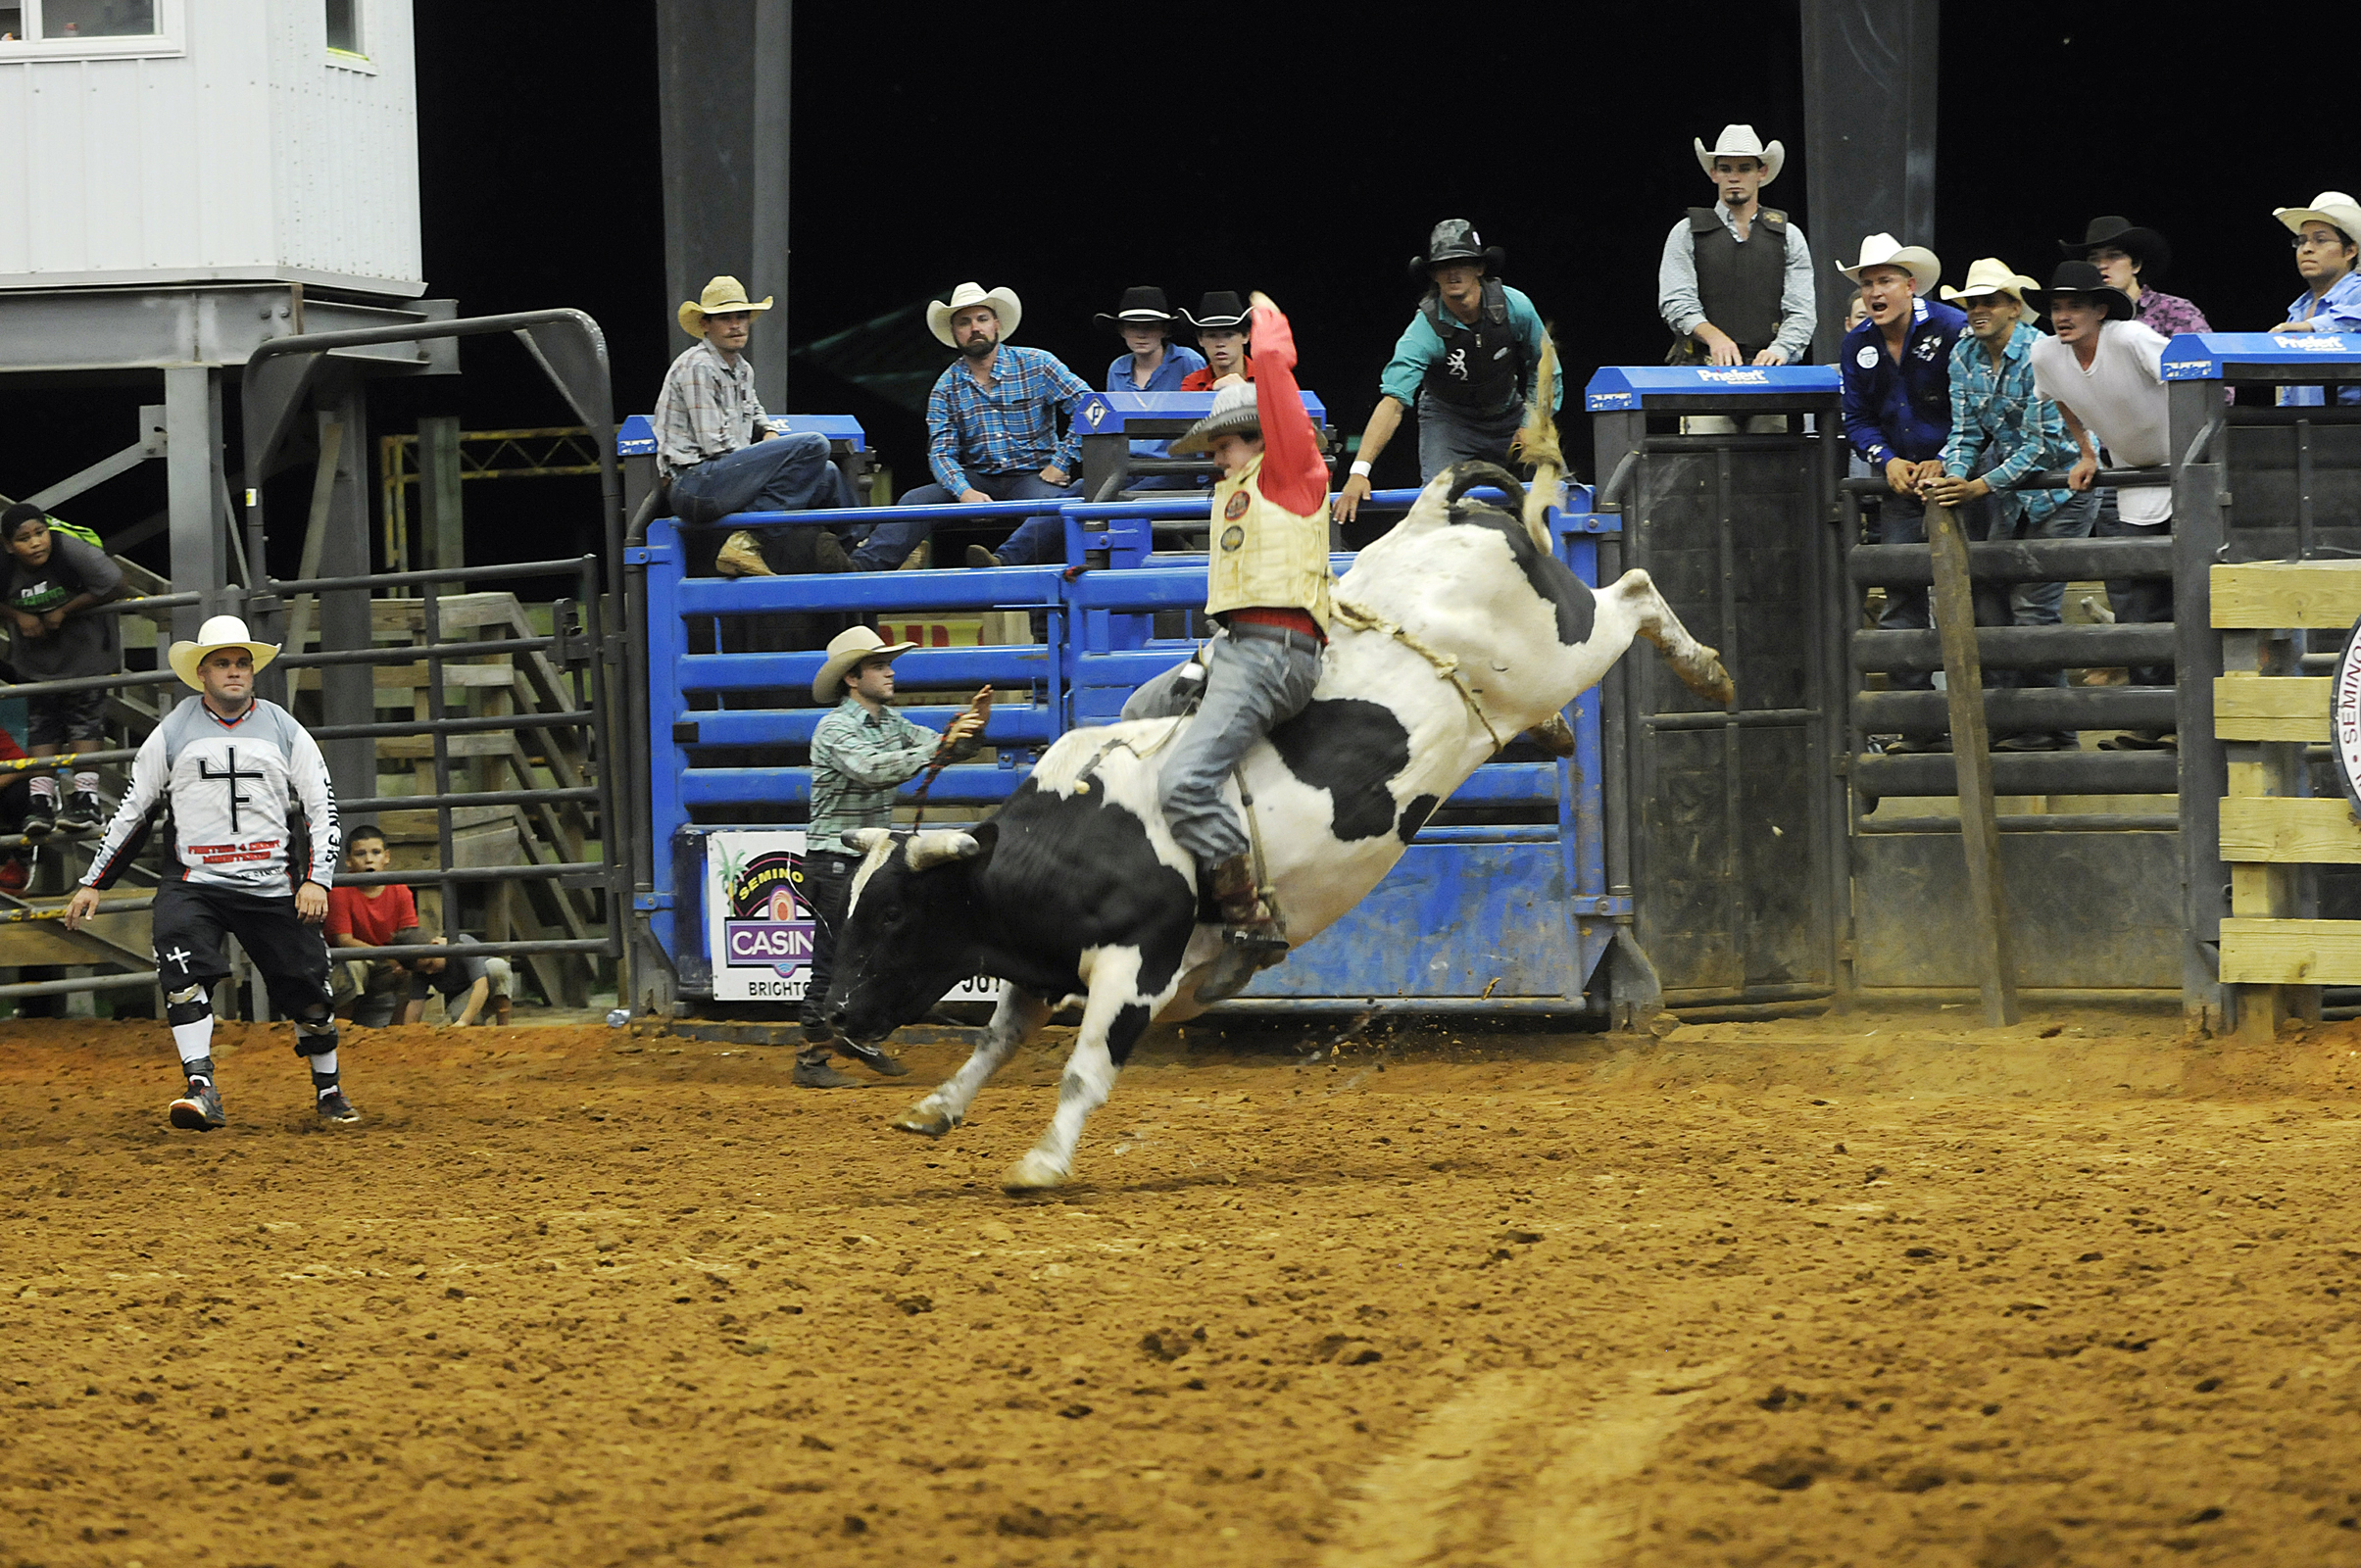 EIRA year end winner Kelton Smedley controls the bull during the EIRA regional finals Sept. 17 in Brighton. (Keith Lovejoy/Keith Lovejoy Photography)